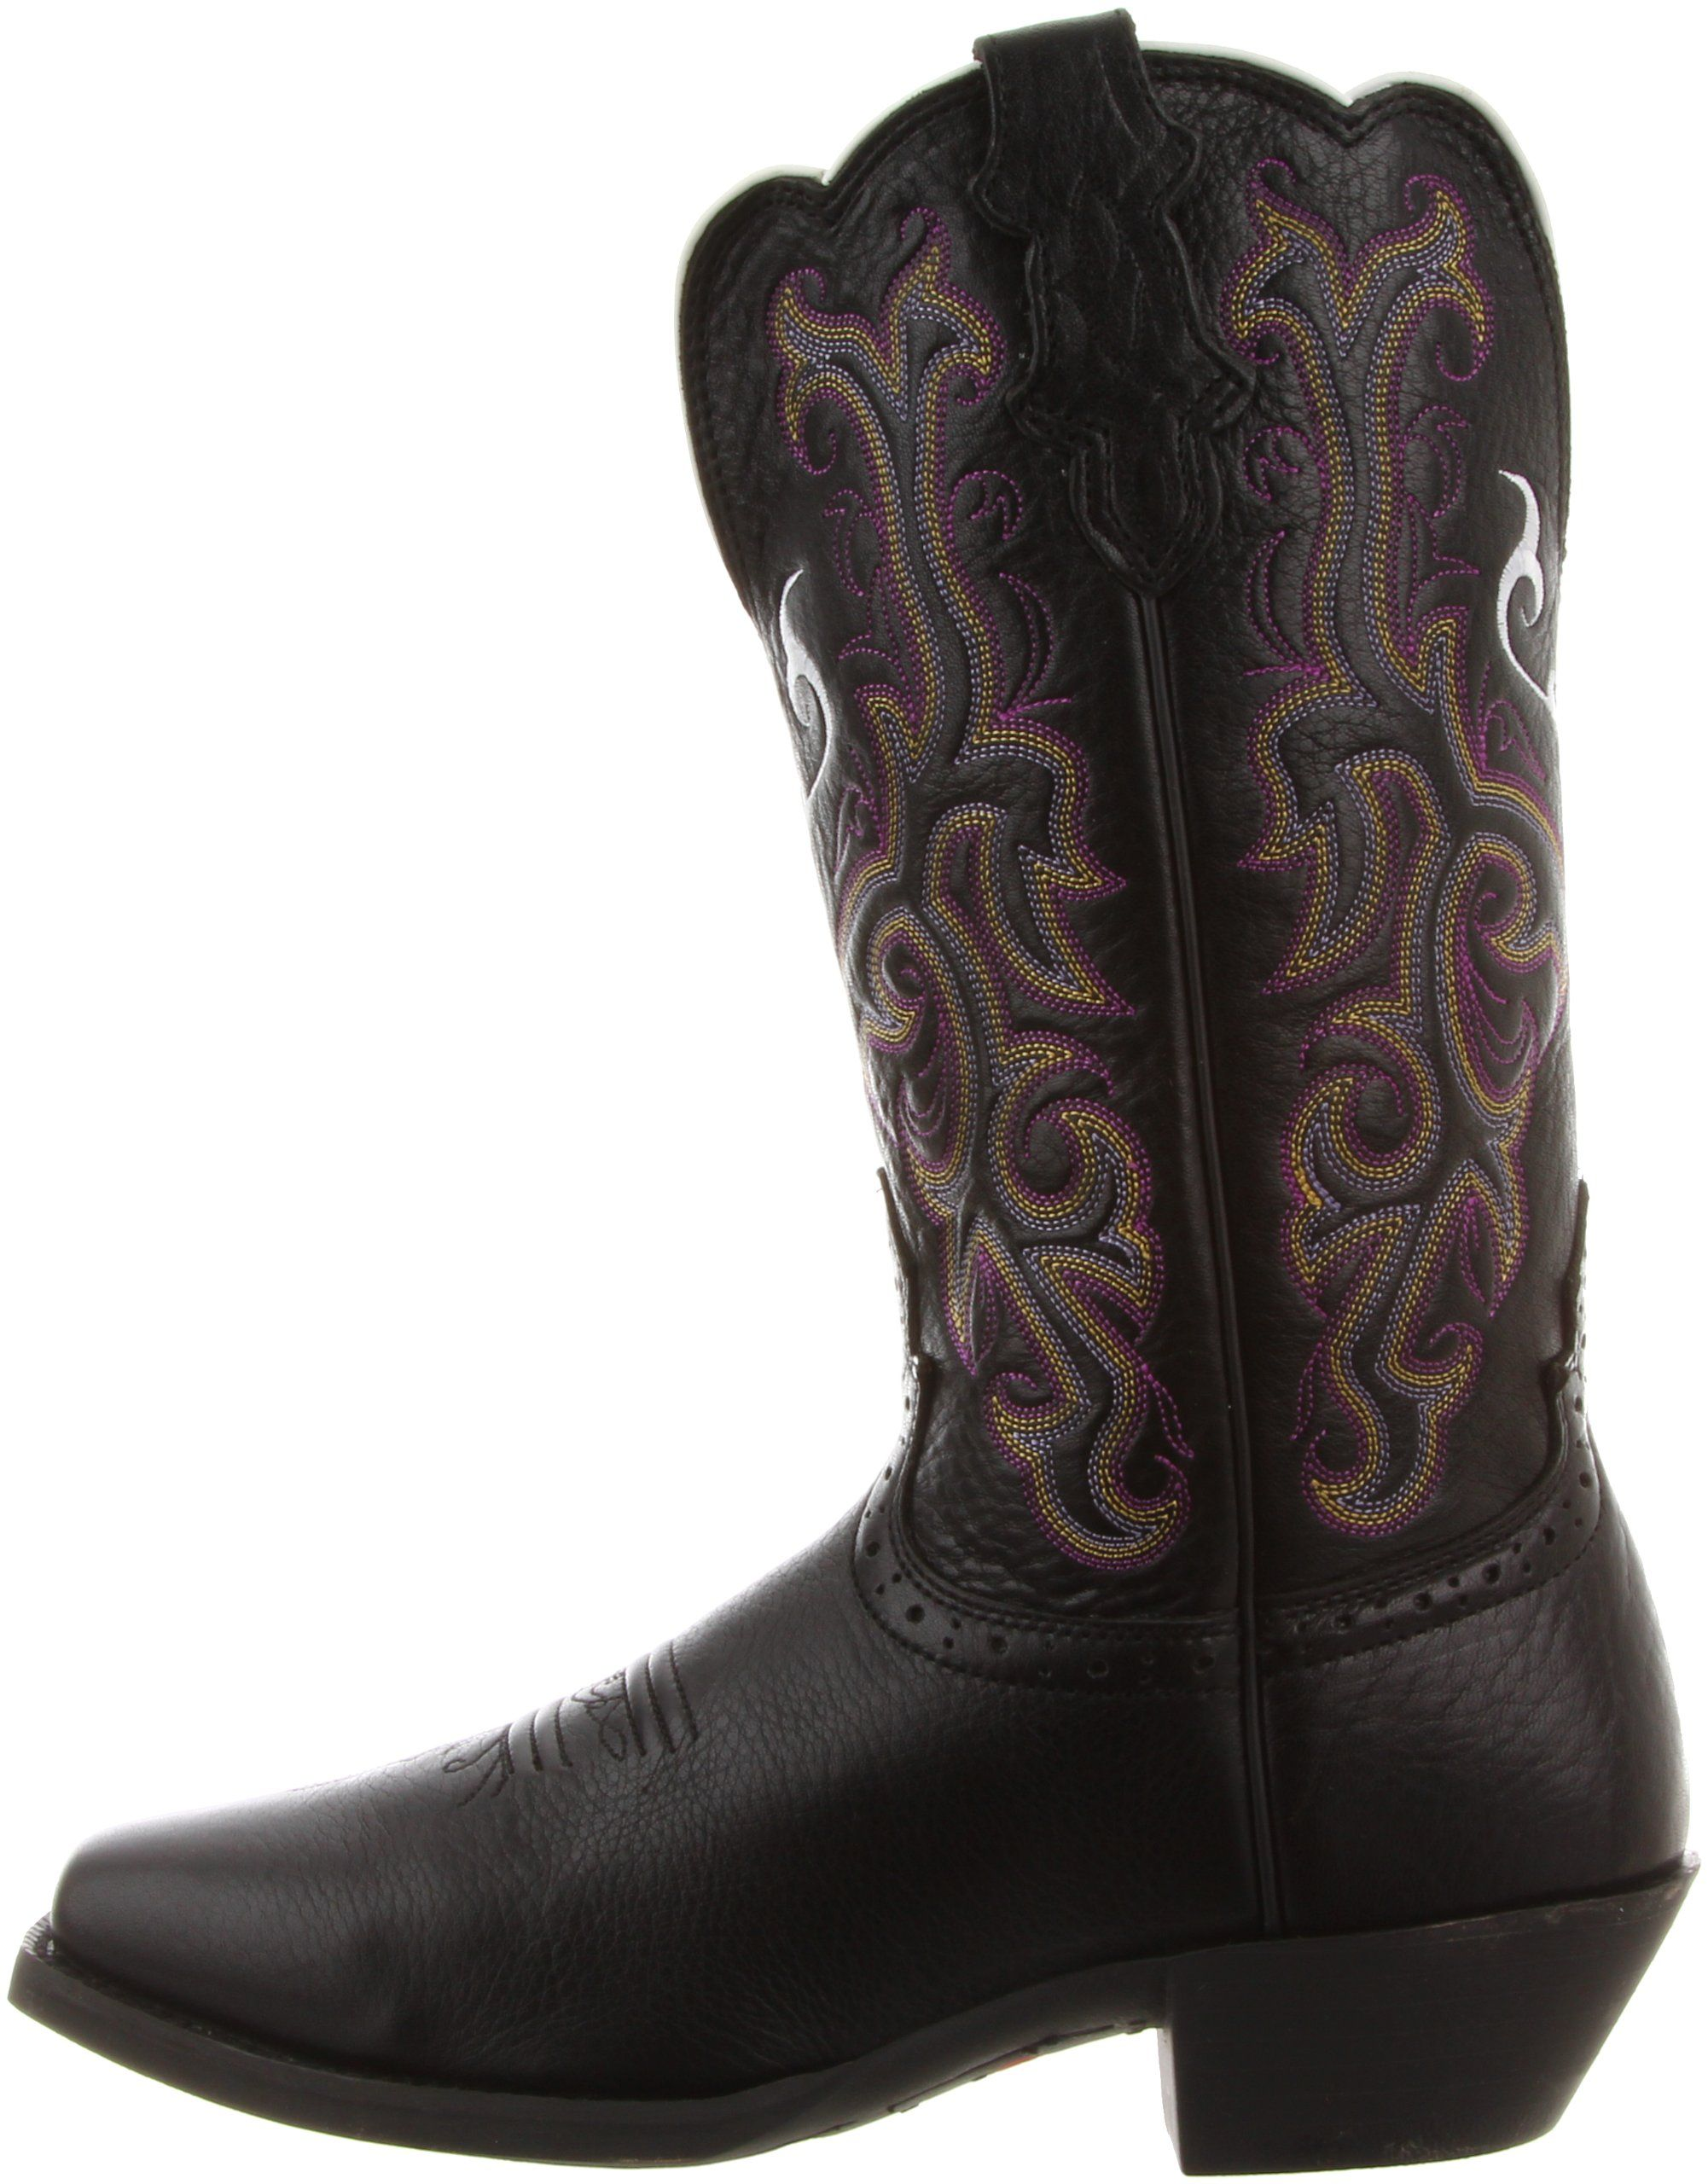 da4d2287cf0 Amazon.com  Justin Boots Women s Stampede Western Boot  Justin Deercow   Shoes